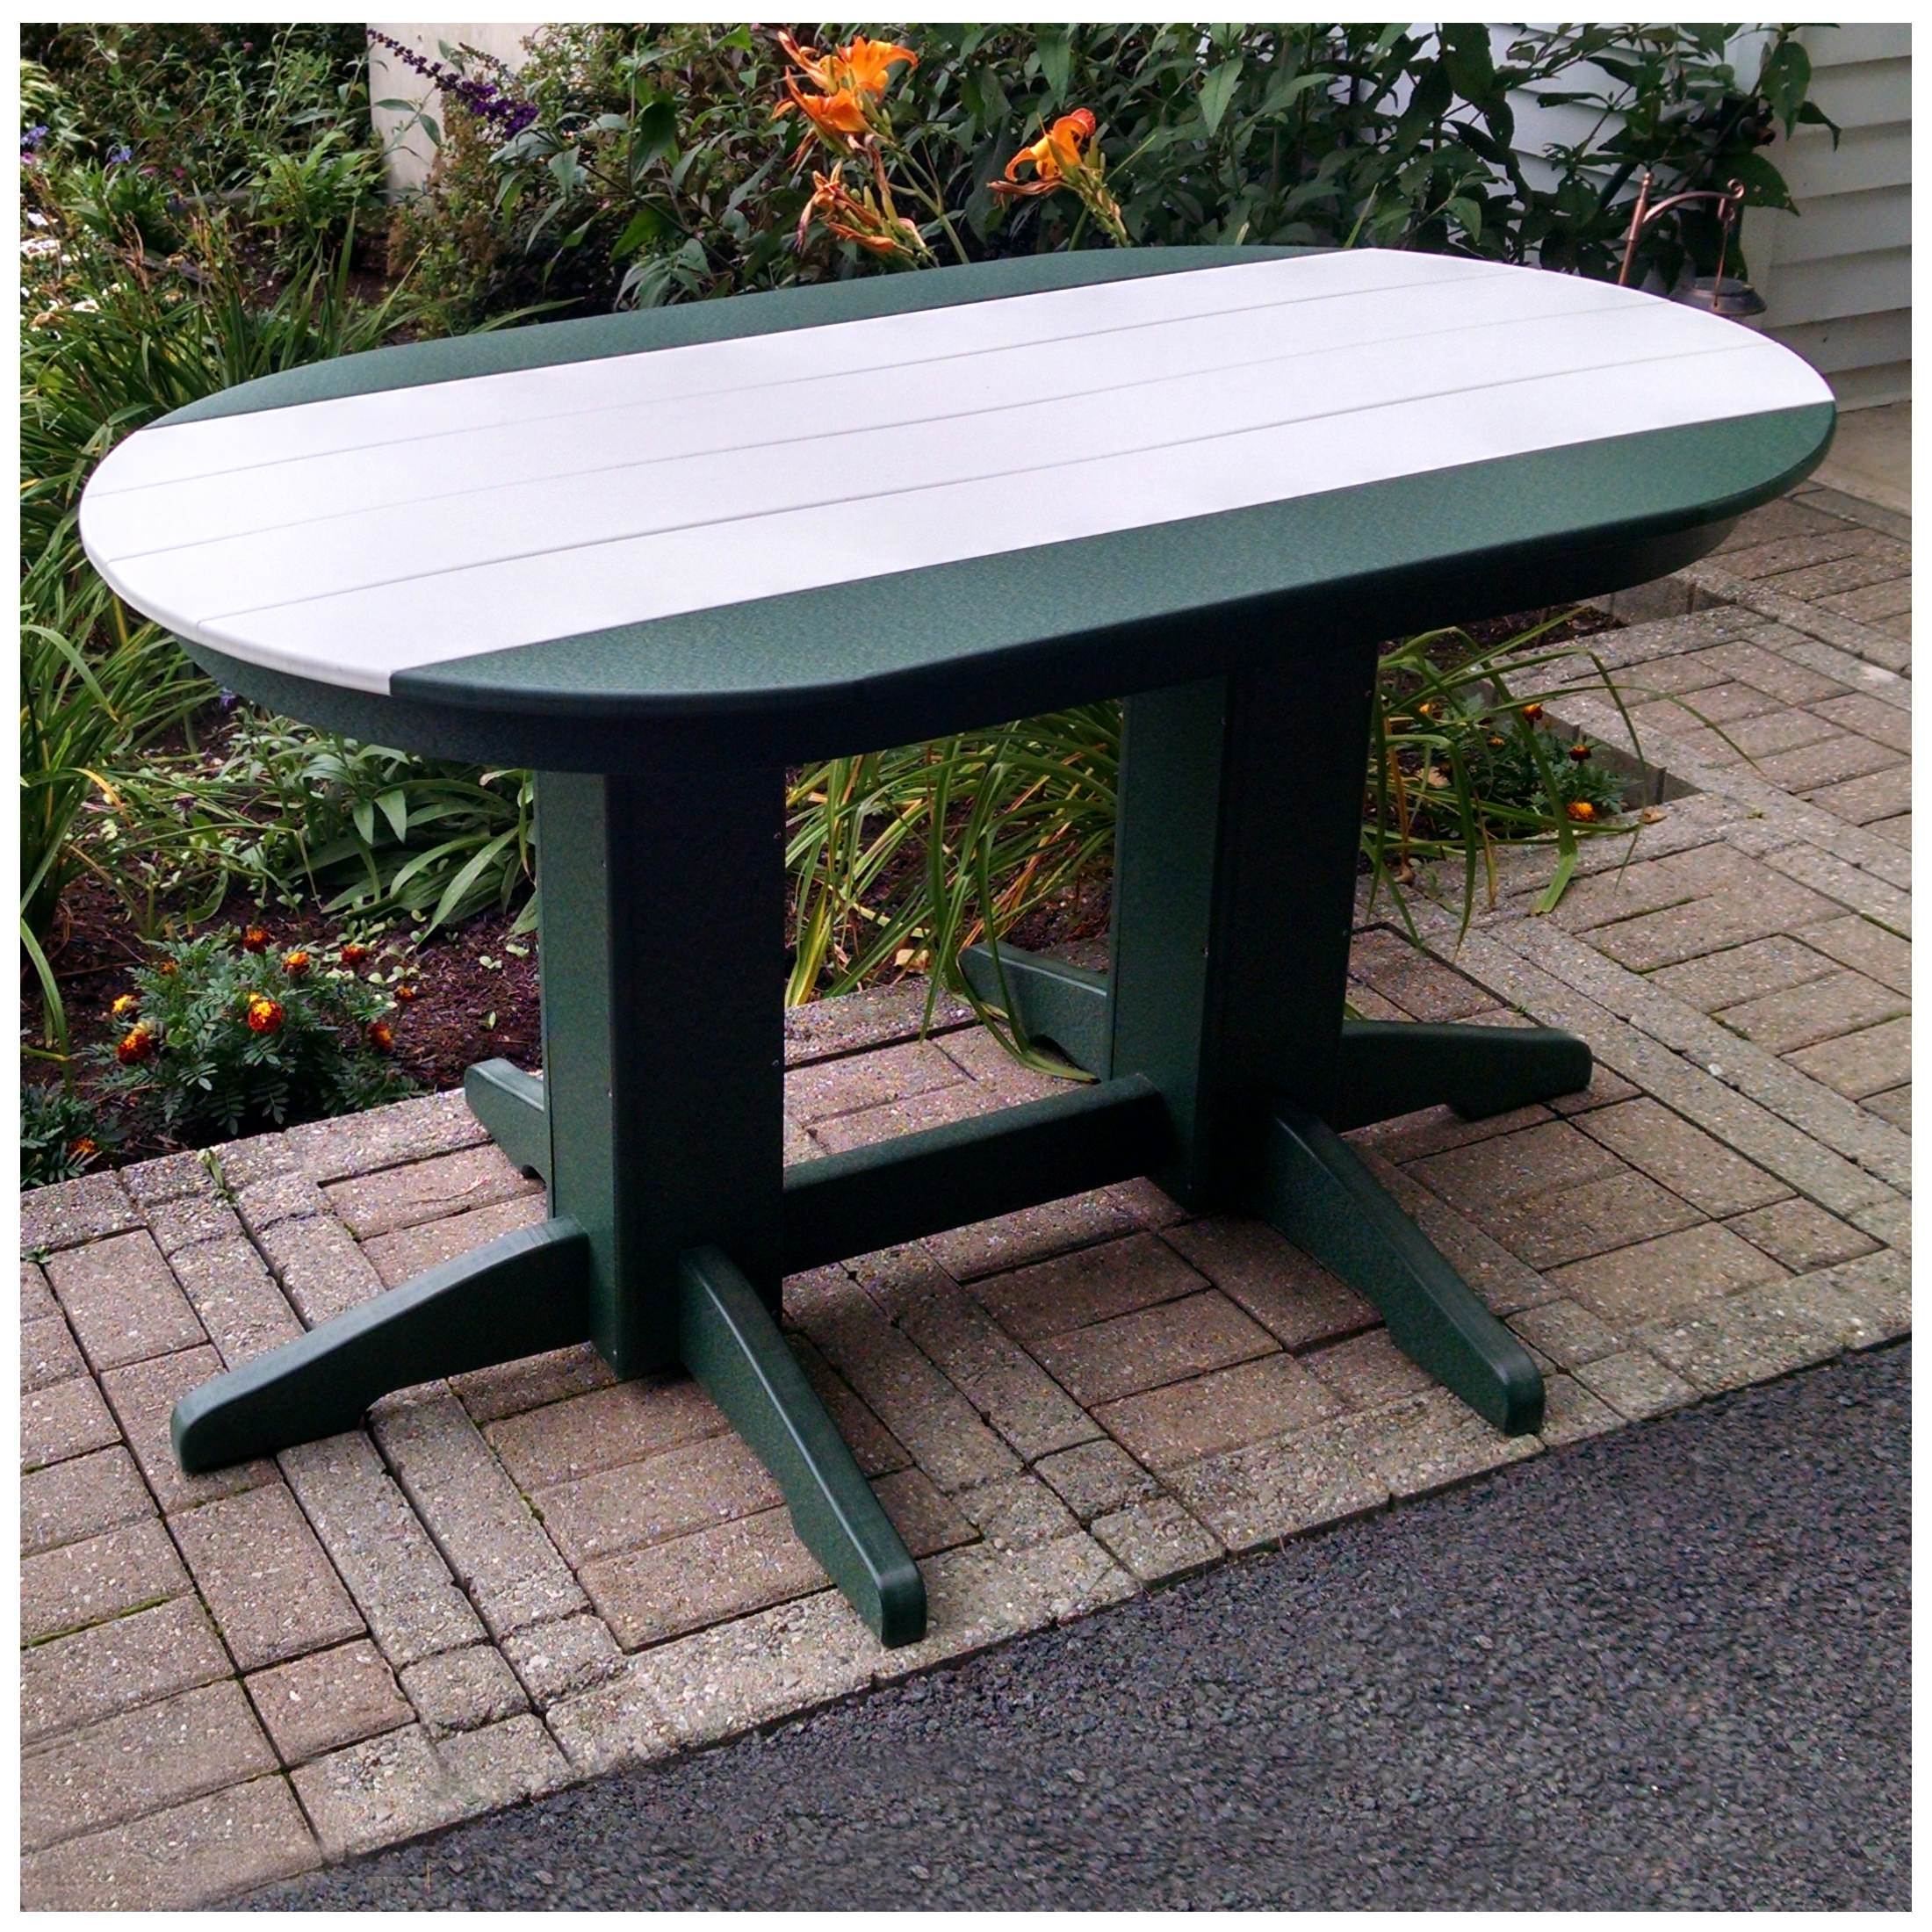 A&L Furniture 60 in x 33 in Oval Dining Table